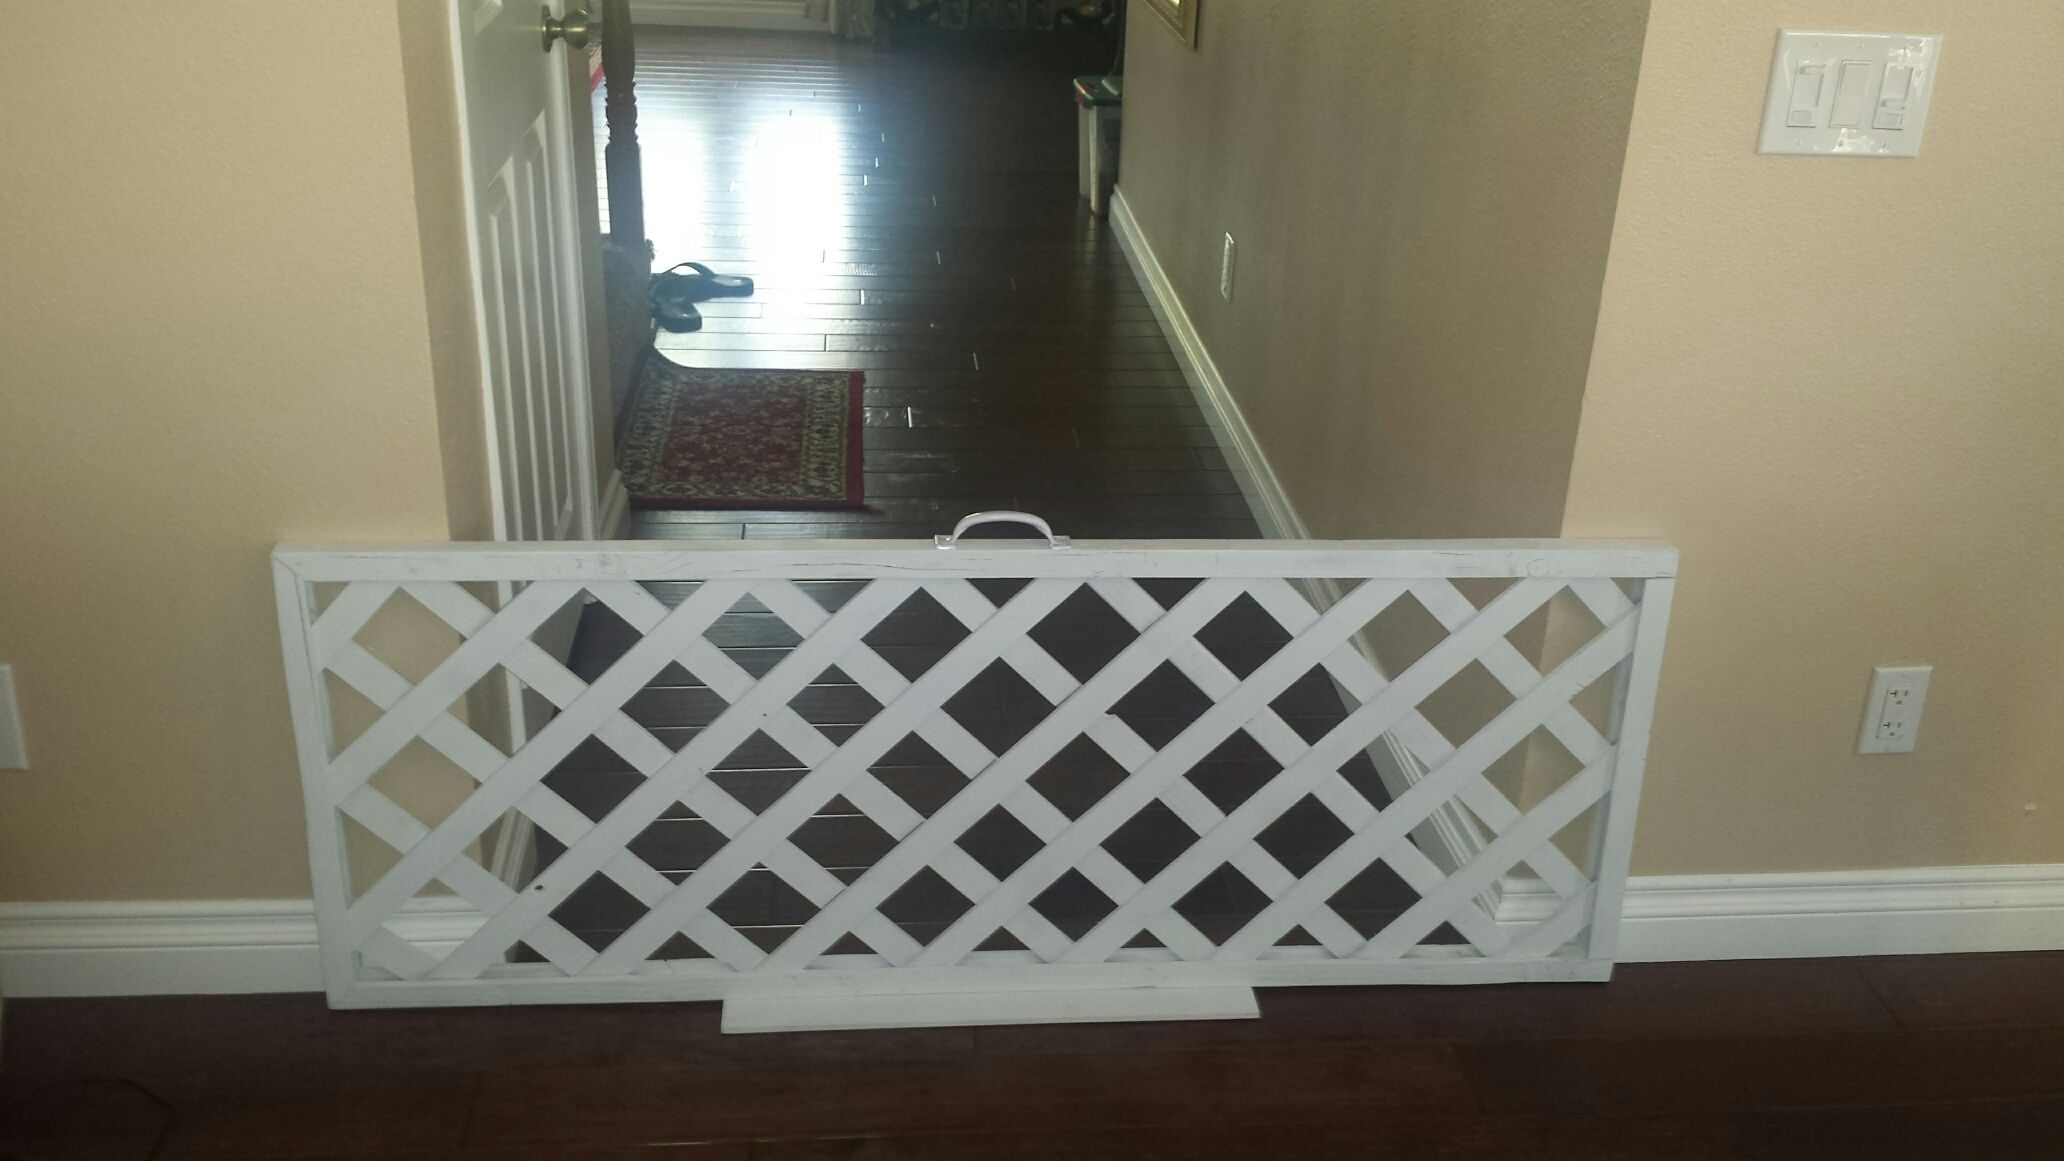 inexpensive indoor dog barrier / fence for wider hallways under $25